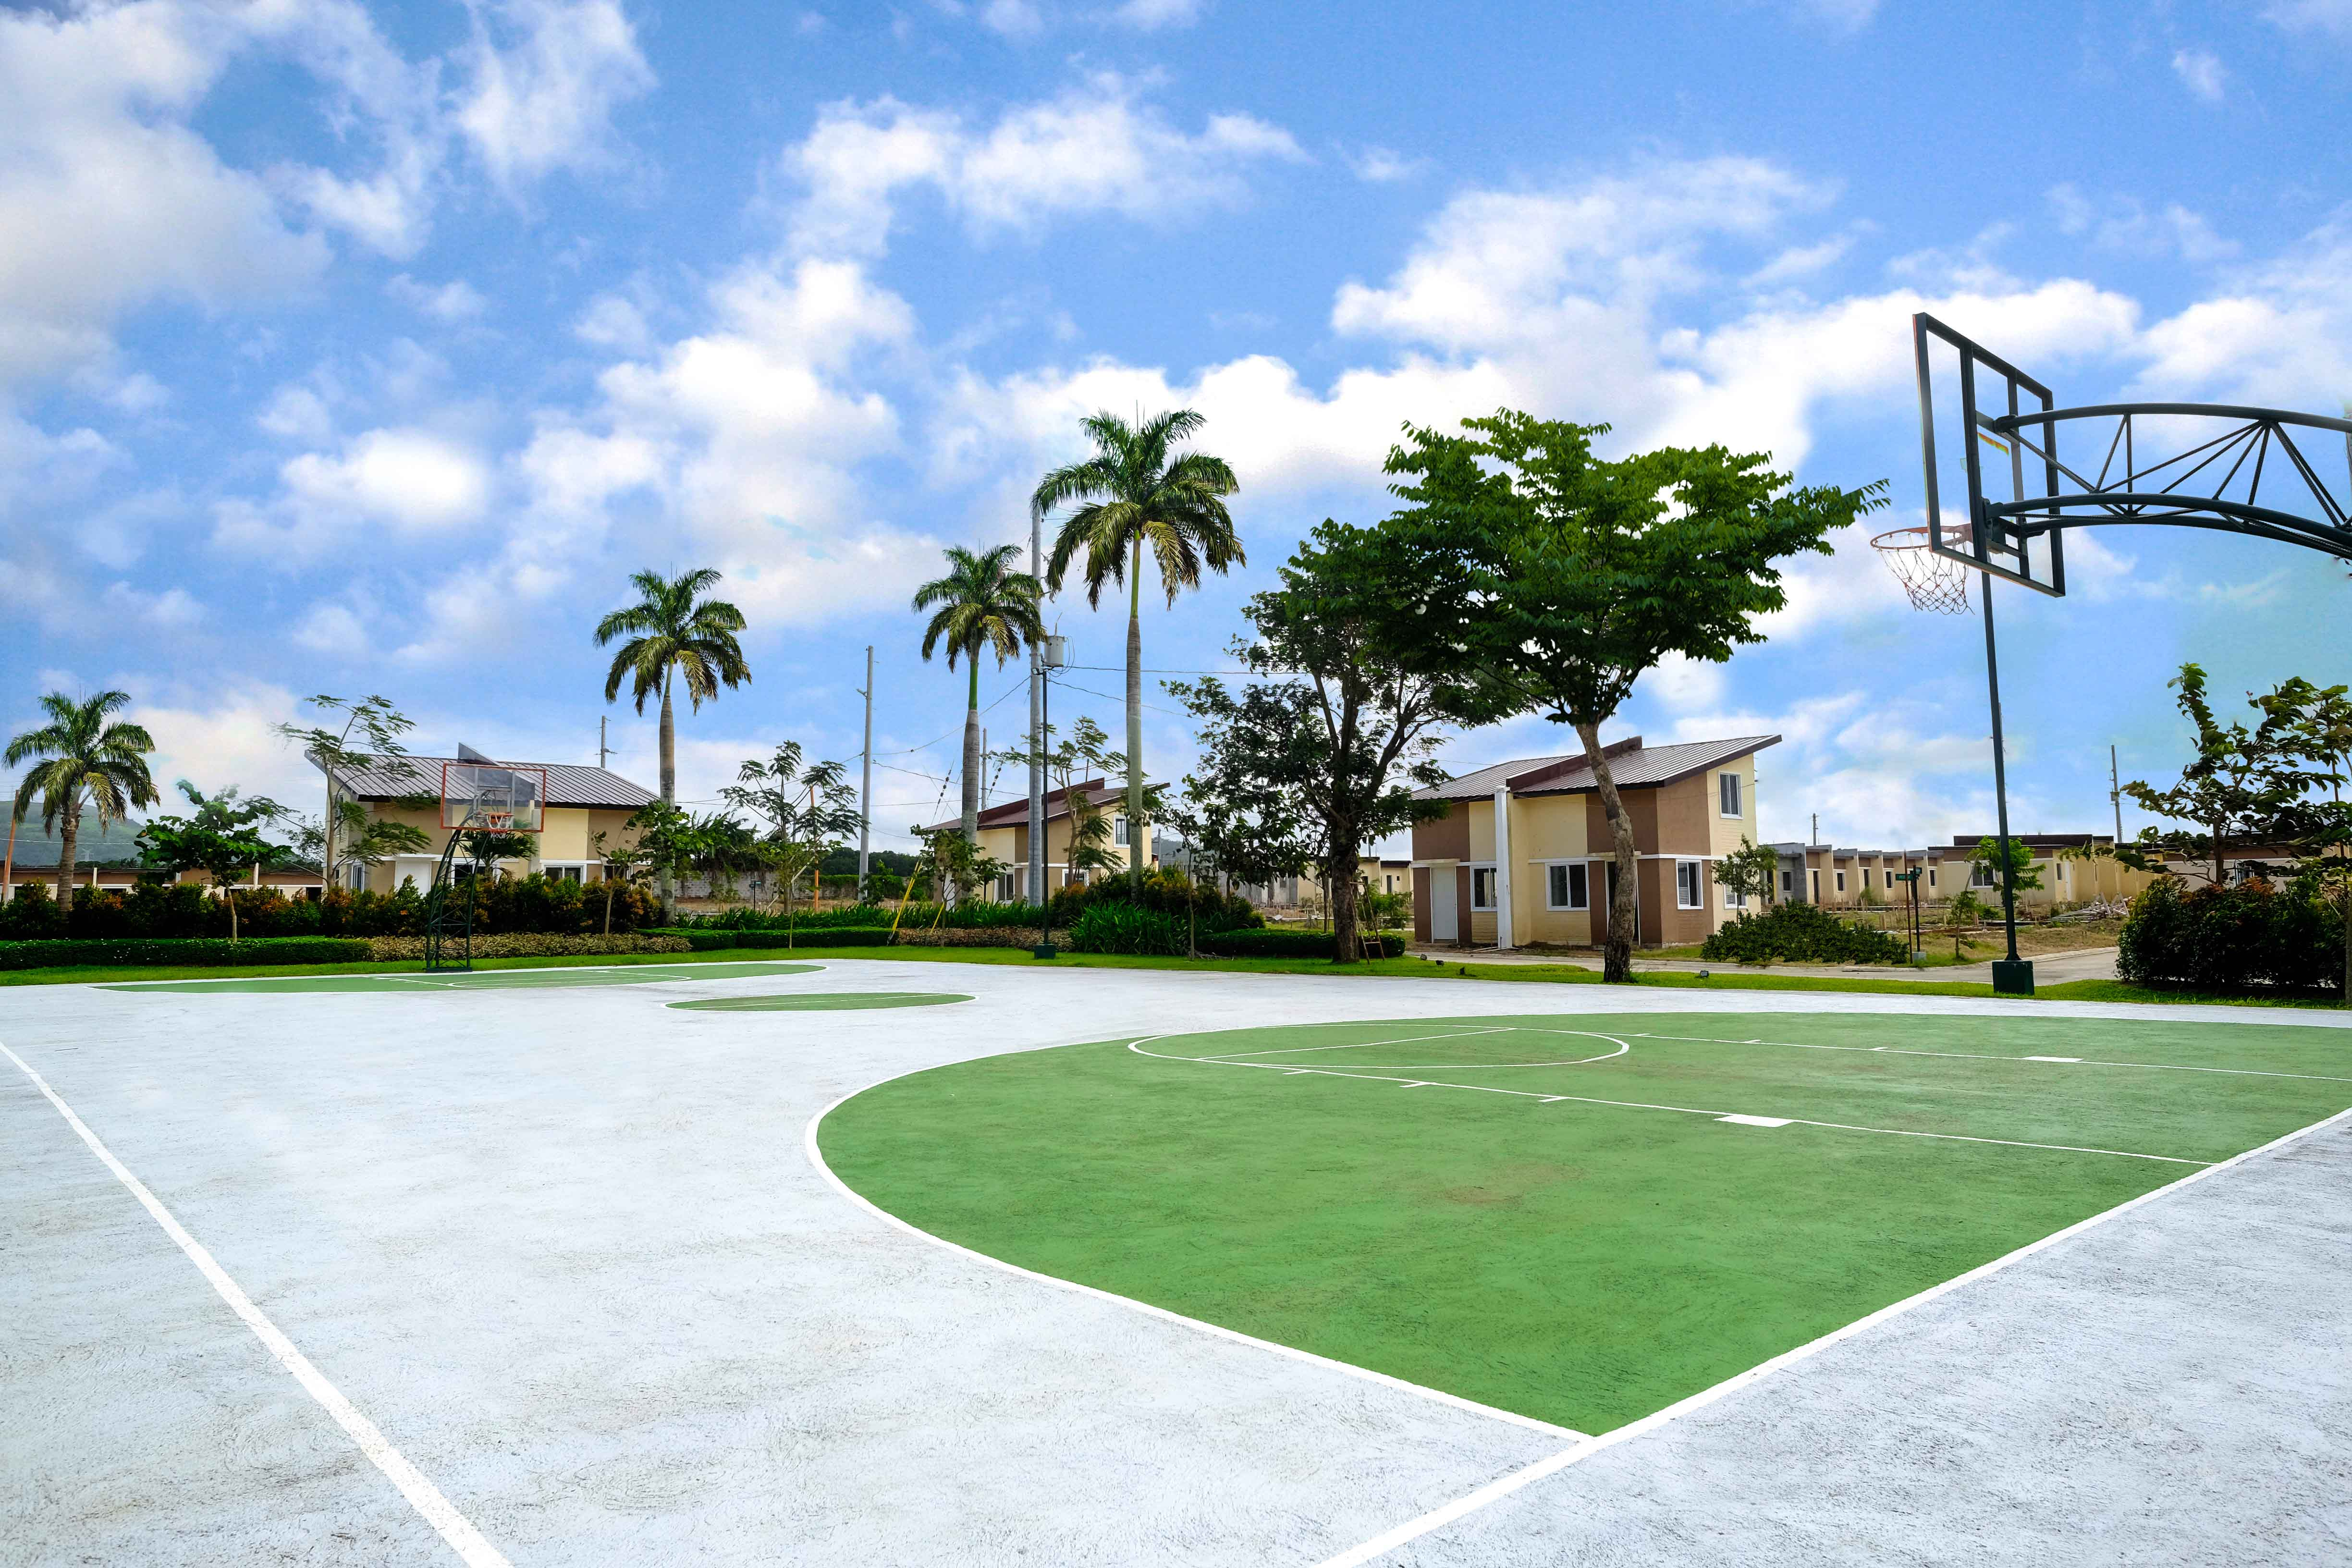 Basketball court of Stonewell Acacia Homes